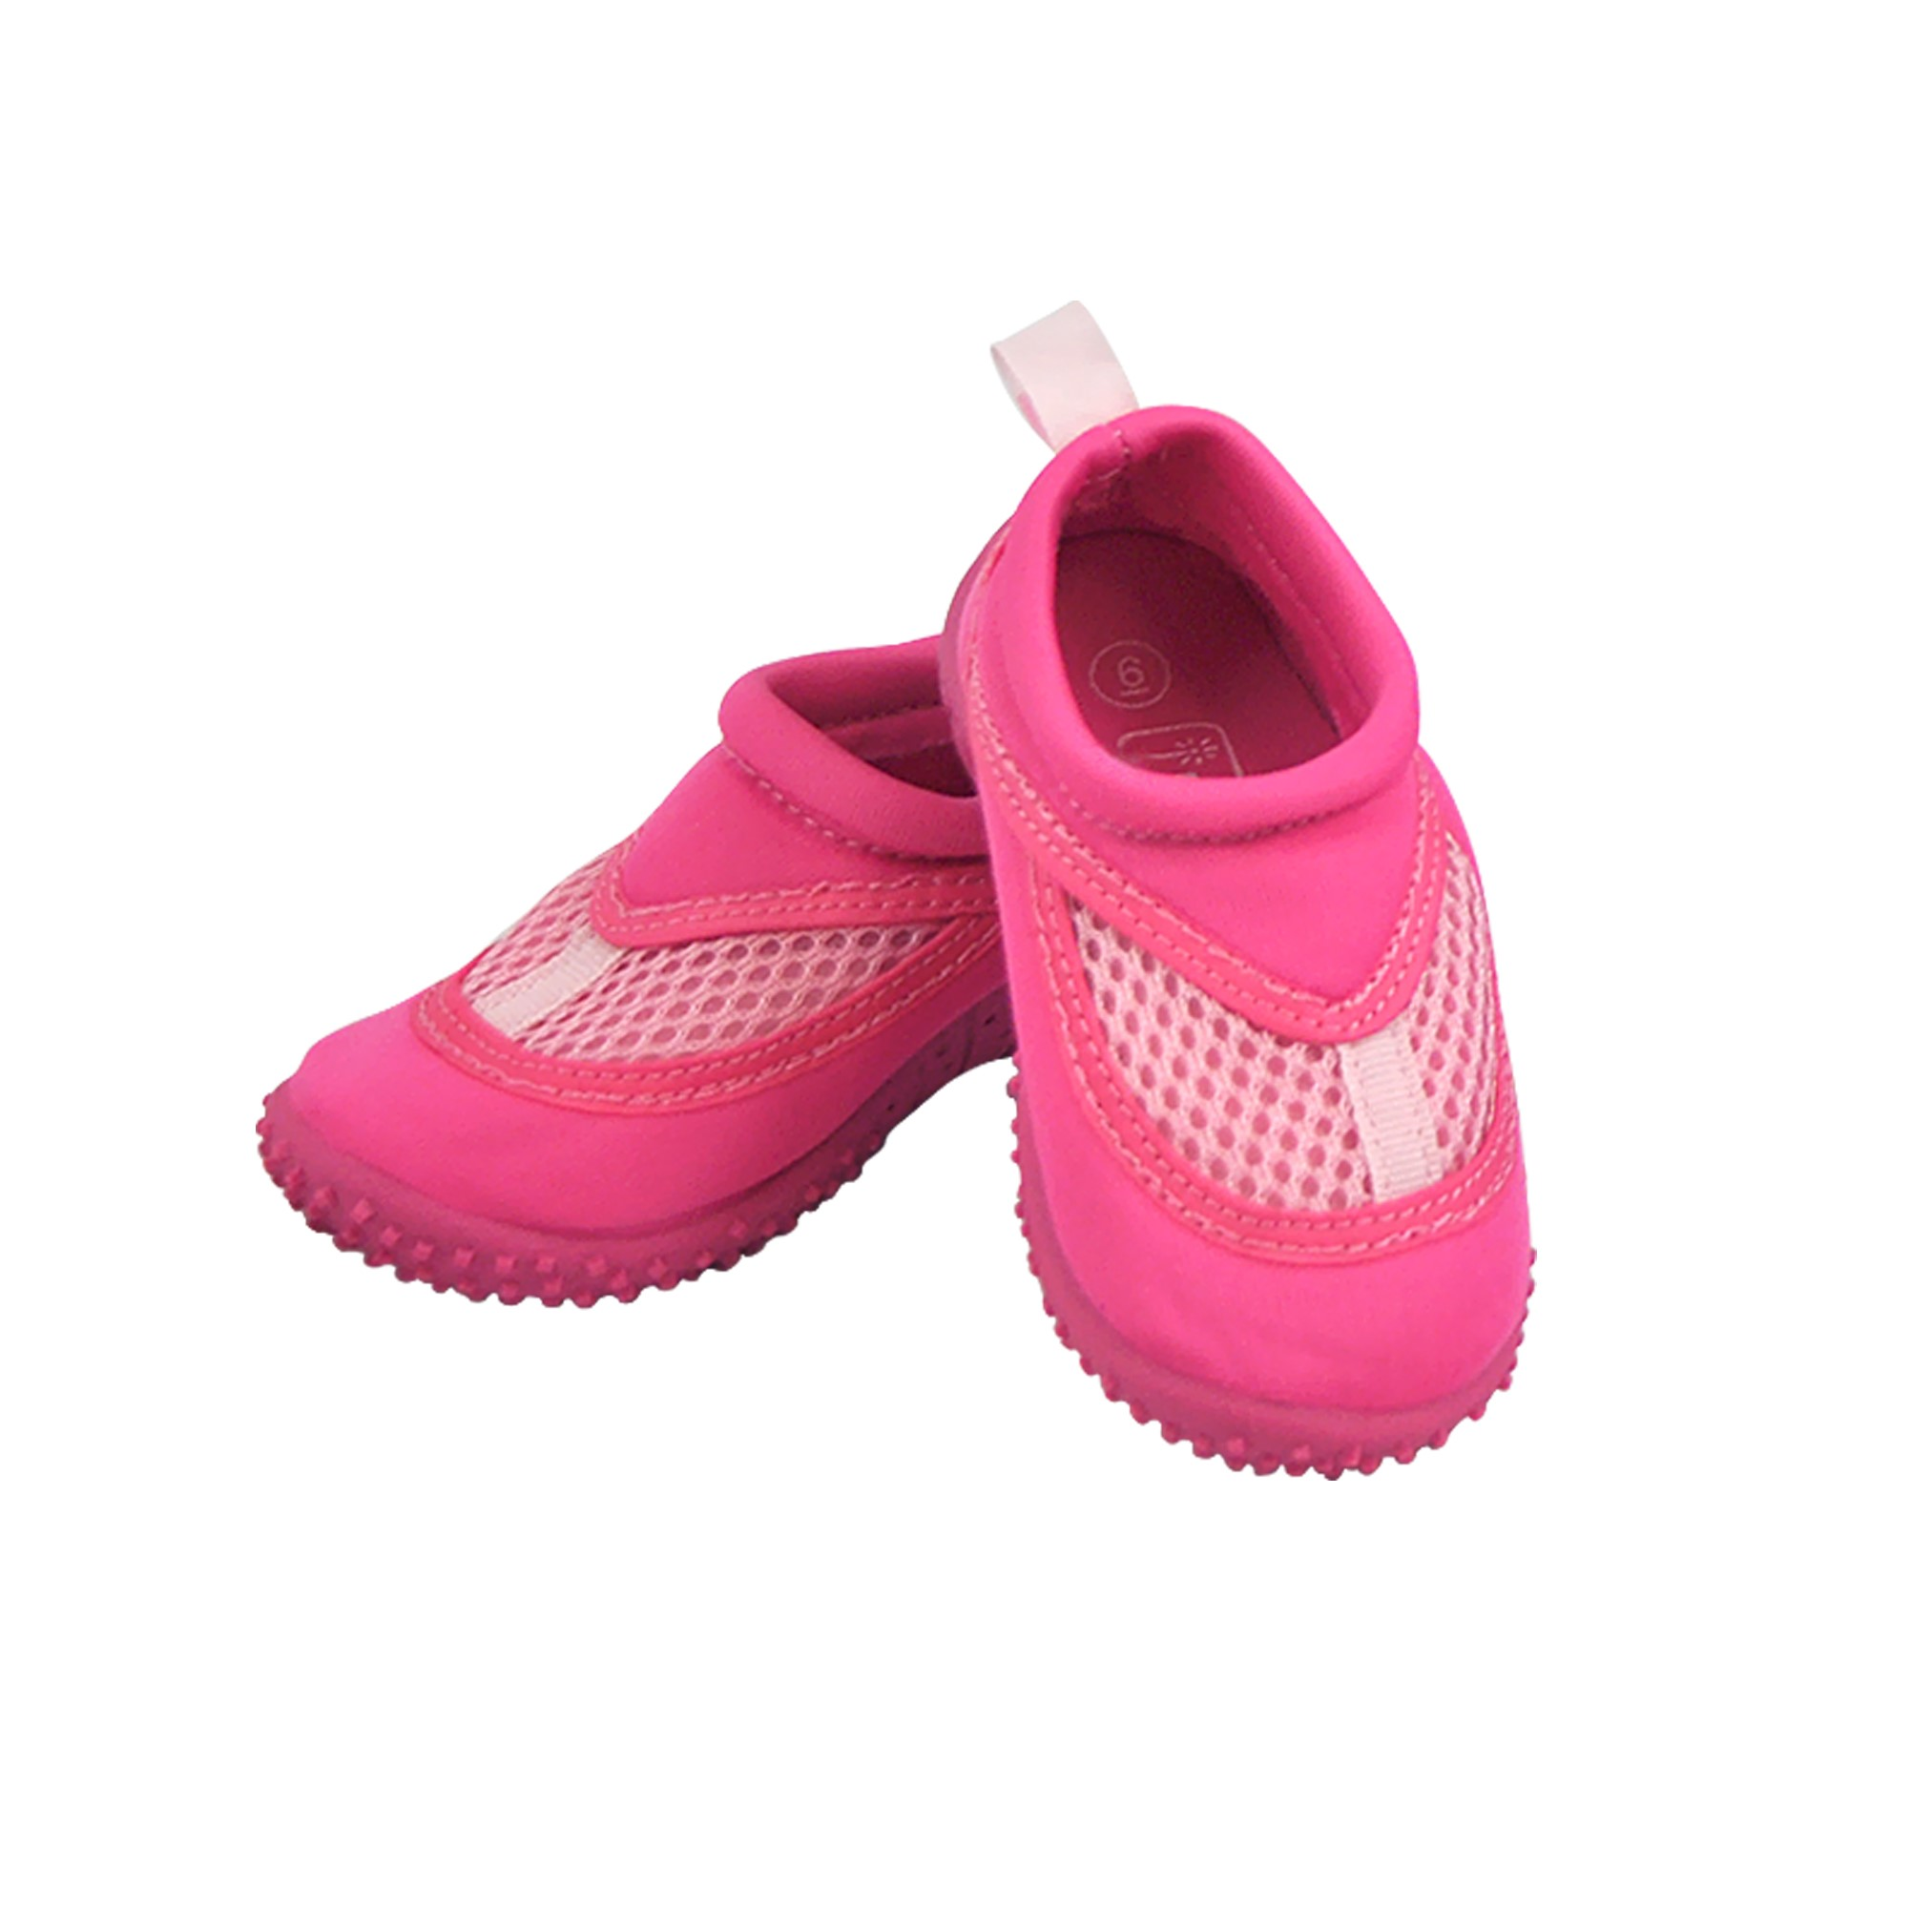 I Play Baby Girls Water Shoes Walmart Com